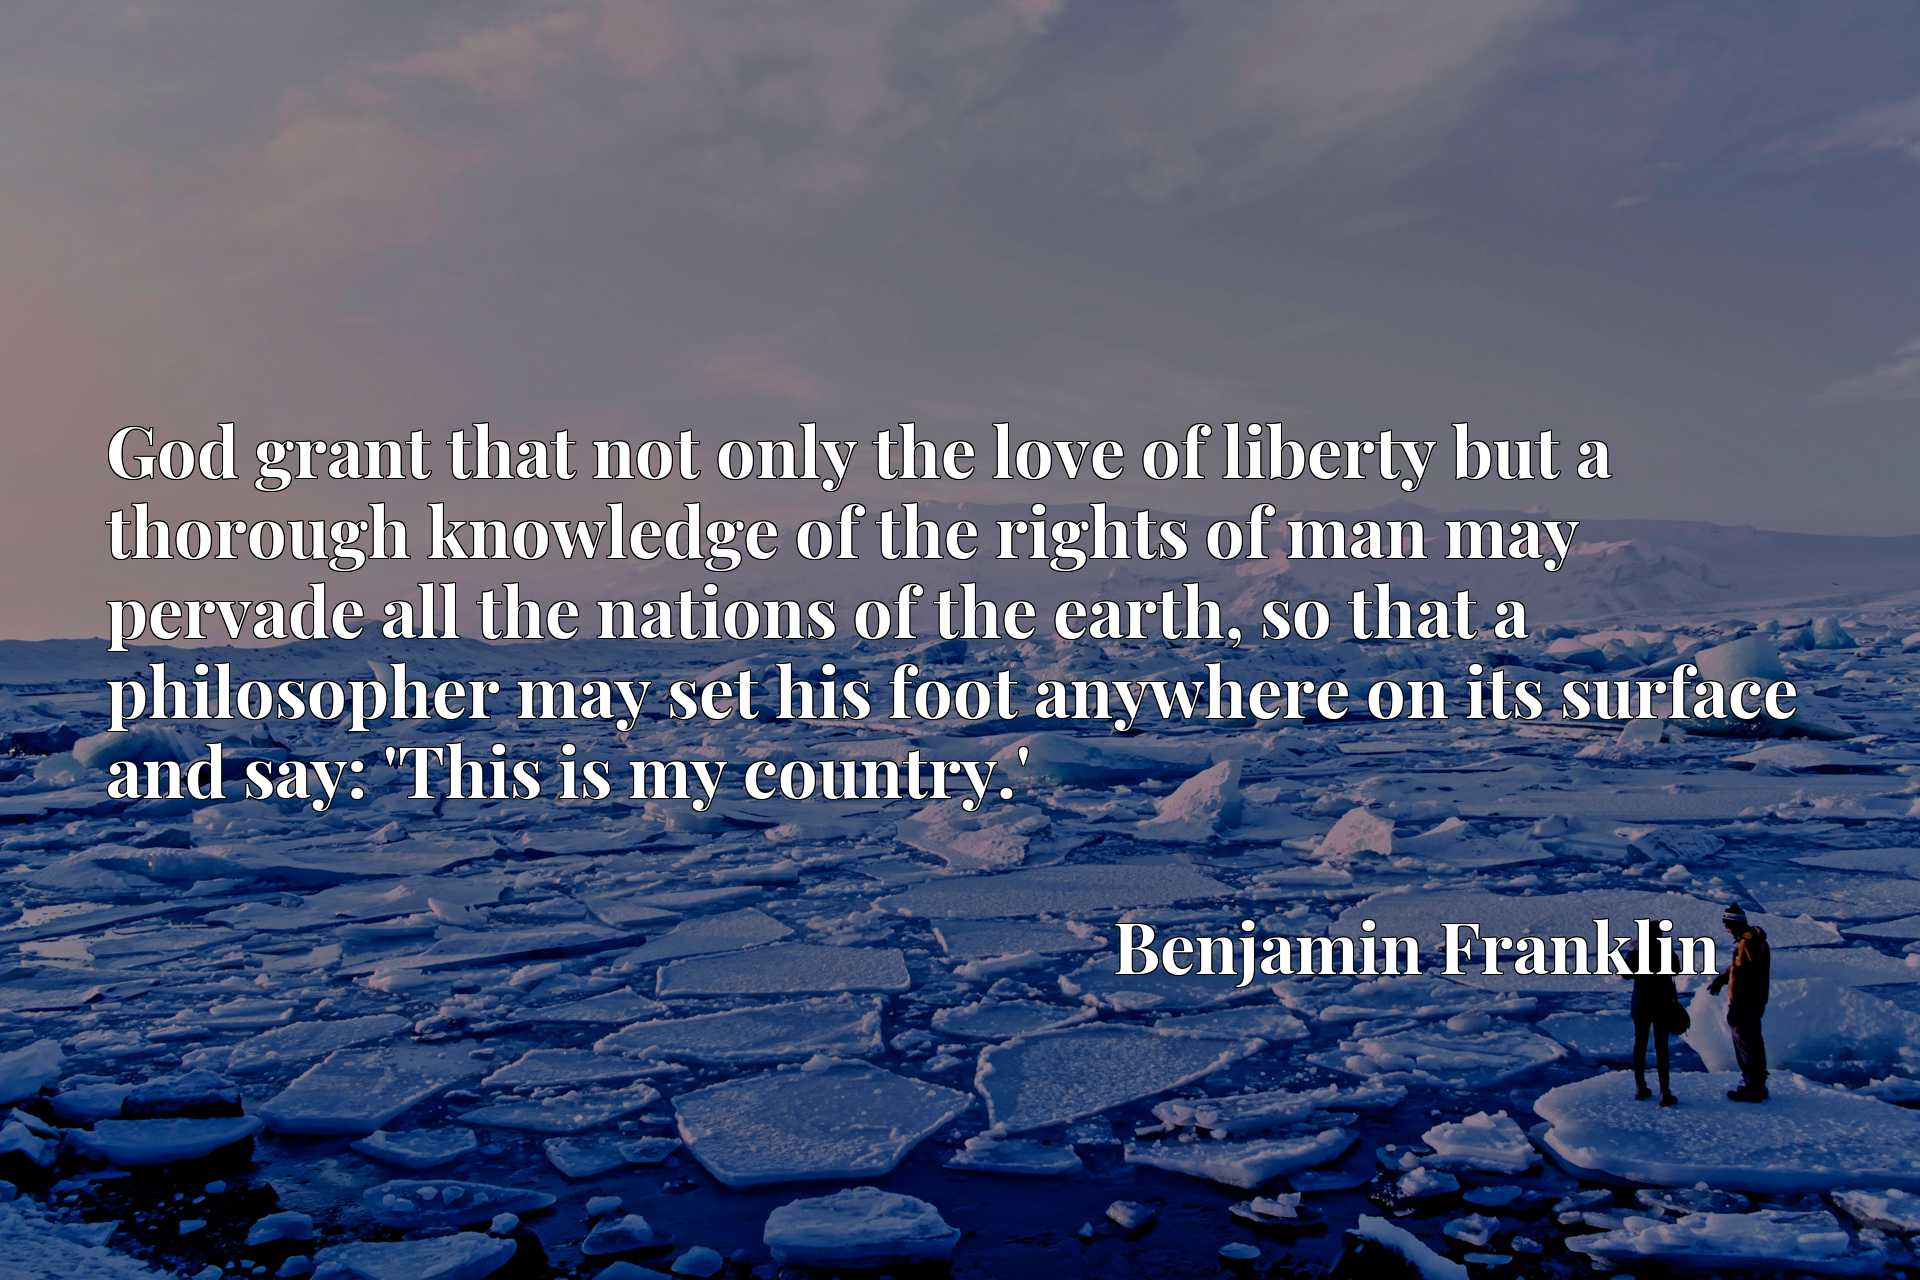 Quote Picture :God grant that not only the love of liberty but a thorough knowledge of the rights of man may pervade all the nations of the earth, so that a philosopher may set his foot anywhere on its surface and say: 'This is my country.'